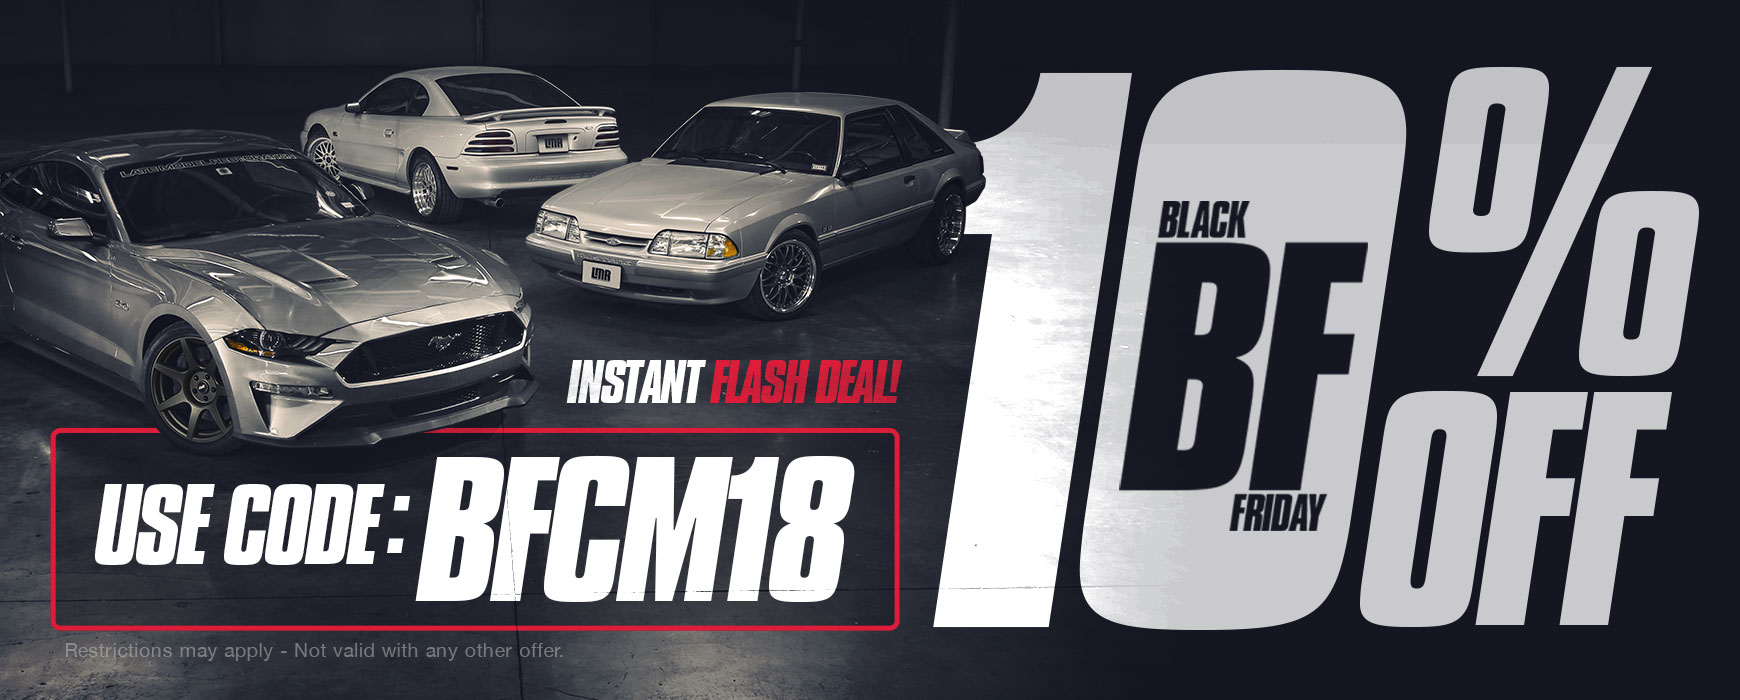 10% OFF LMR Discount Code: BFCM18